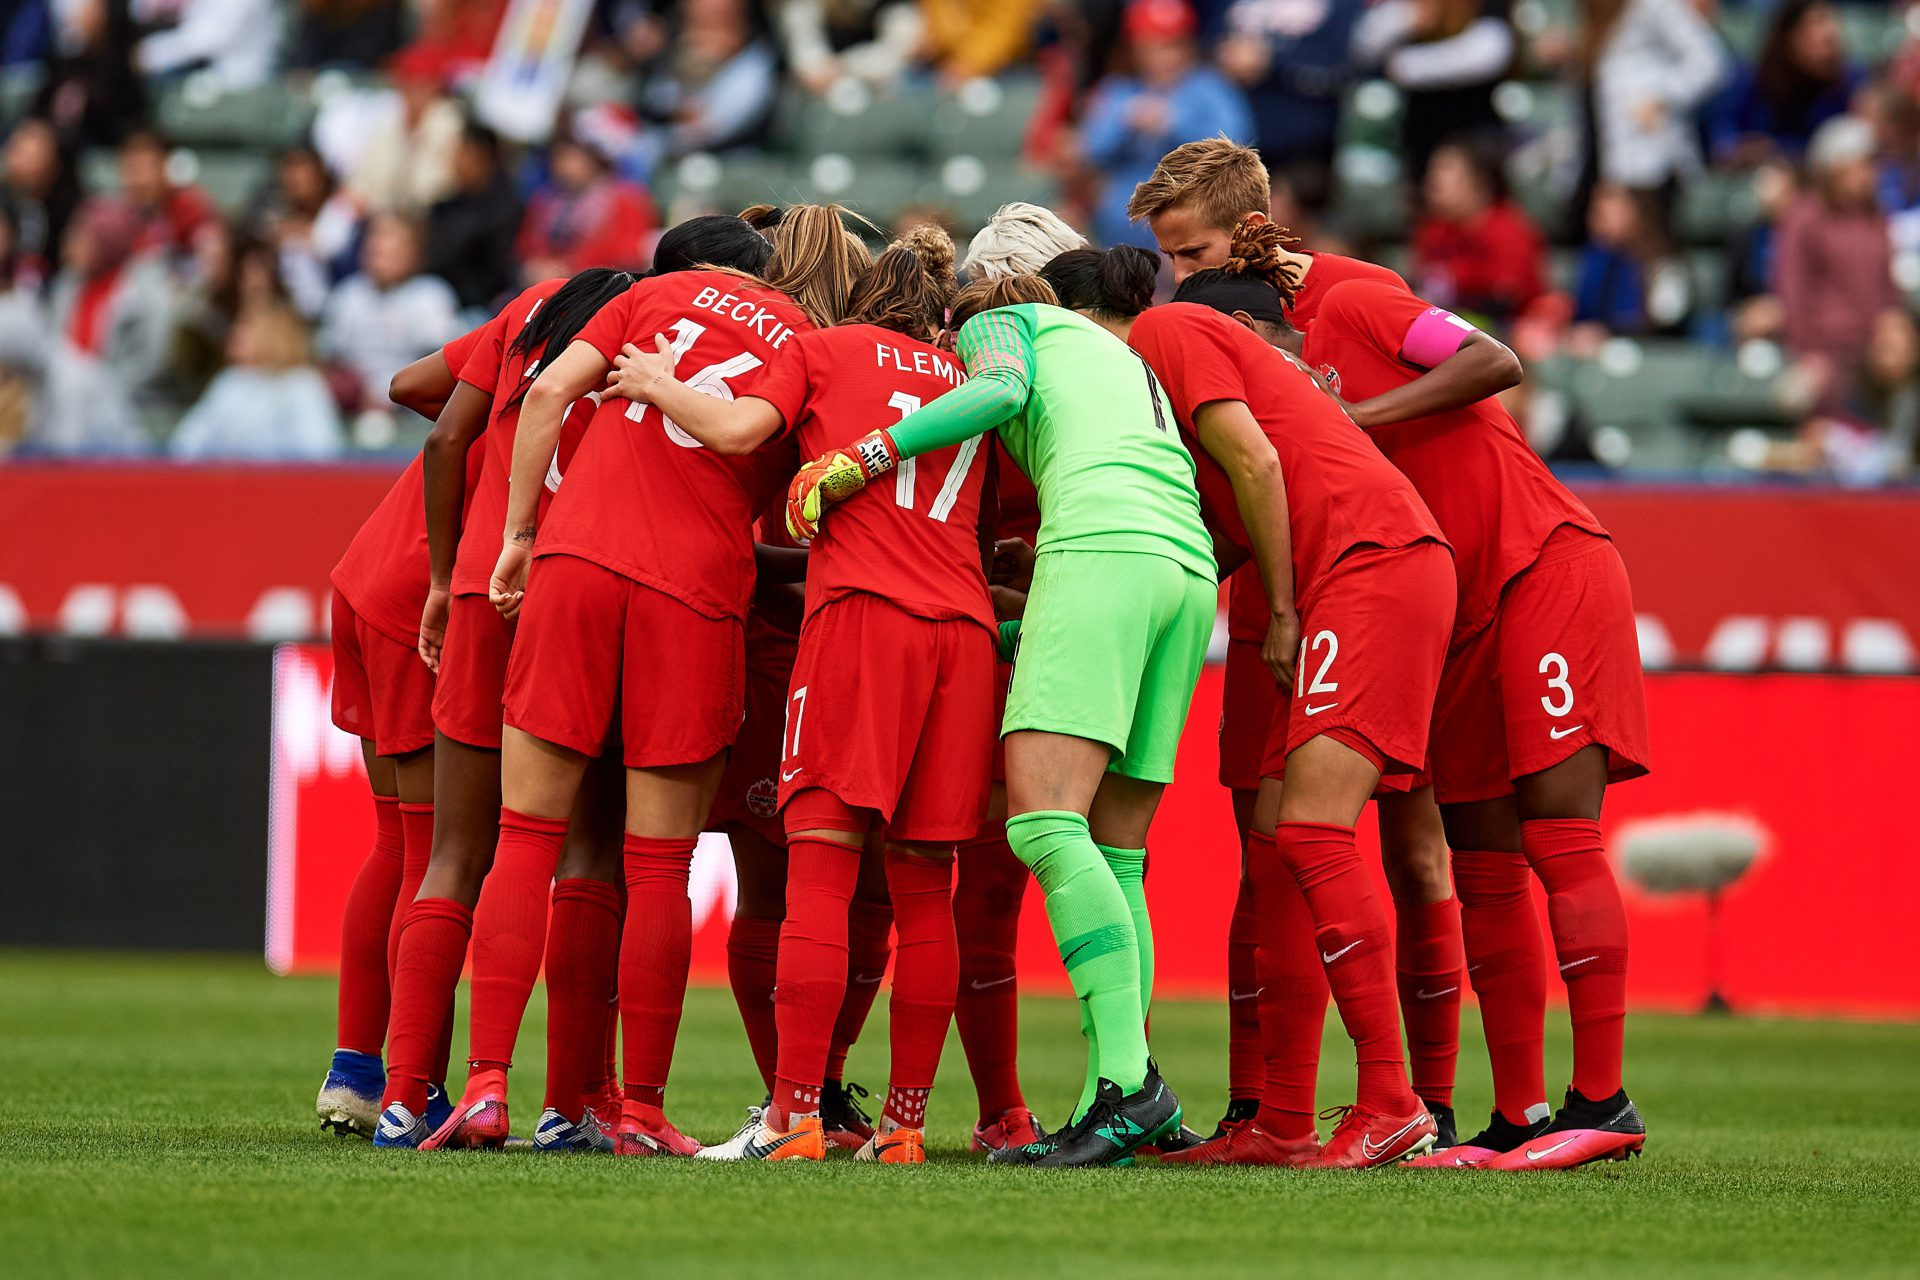 What is france's history in the fifa women's world cup? Canada Soccer Announces Women S National Team Roster For 2021 Shebelieves Cup Canada Soccer